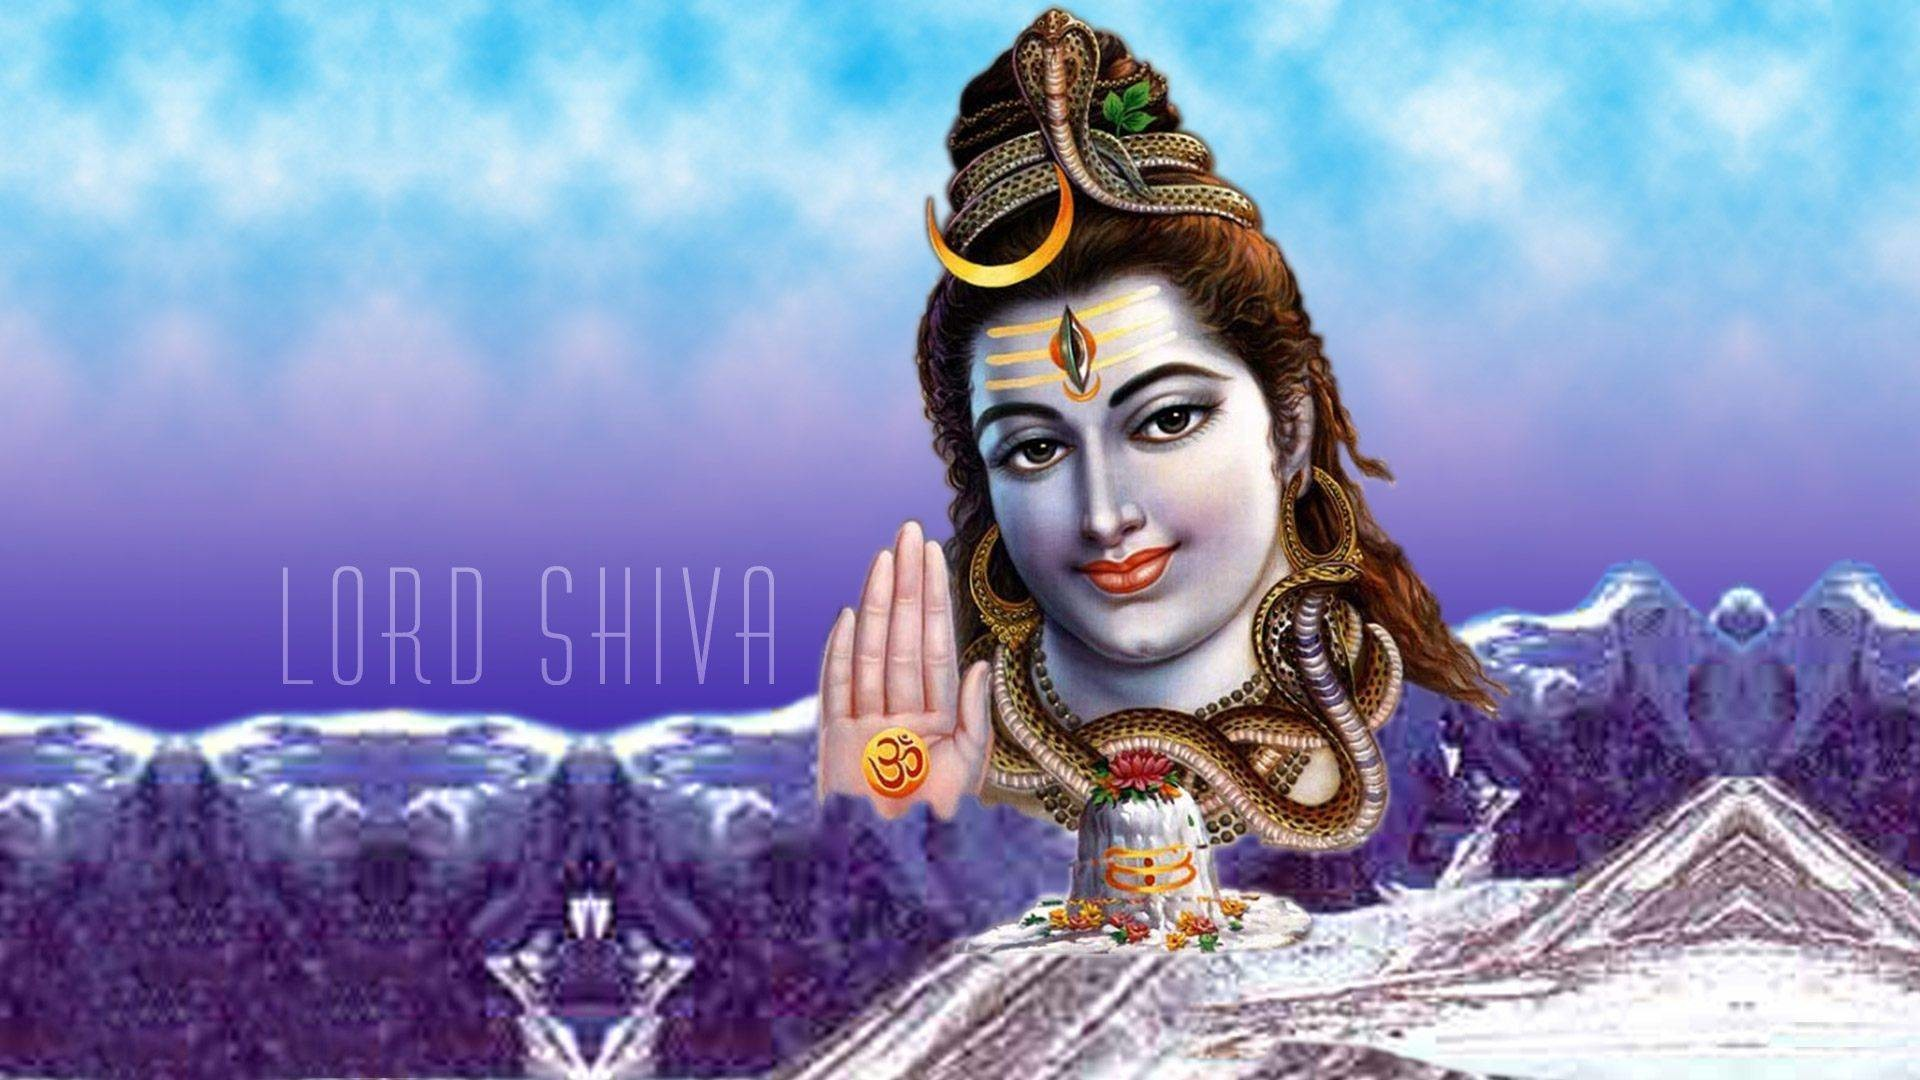 Lord Shiva Wallpaper: Shiv Photo Wallpapers (66+ Images